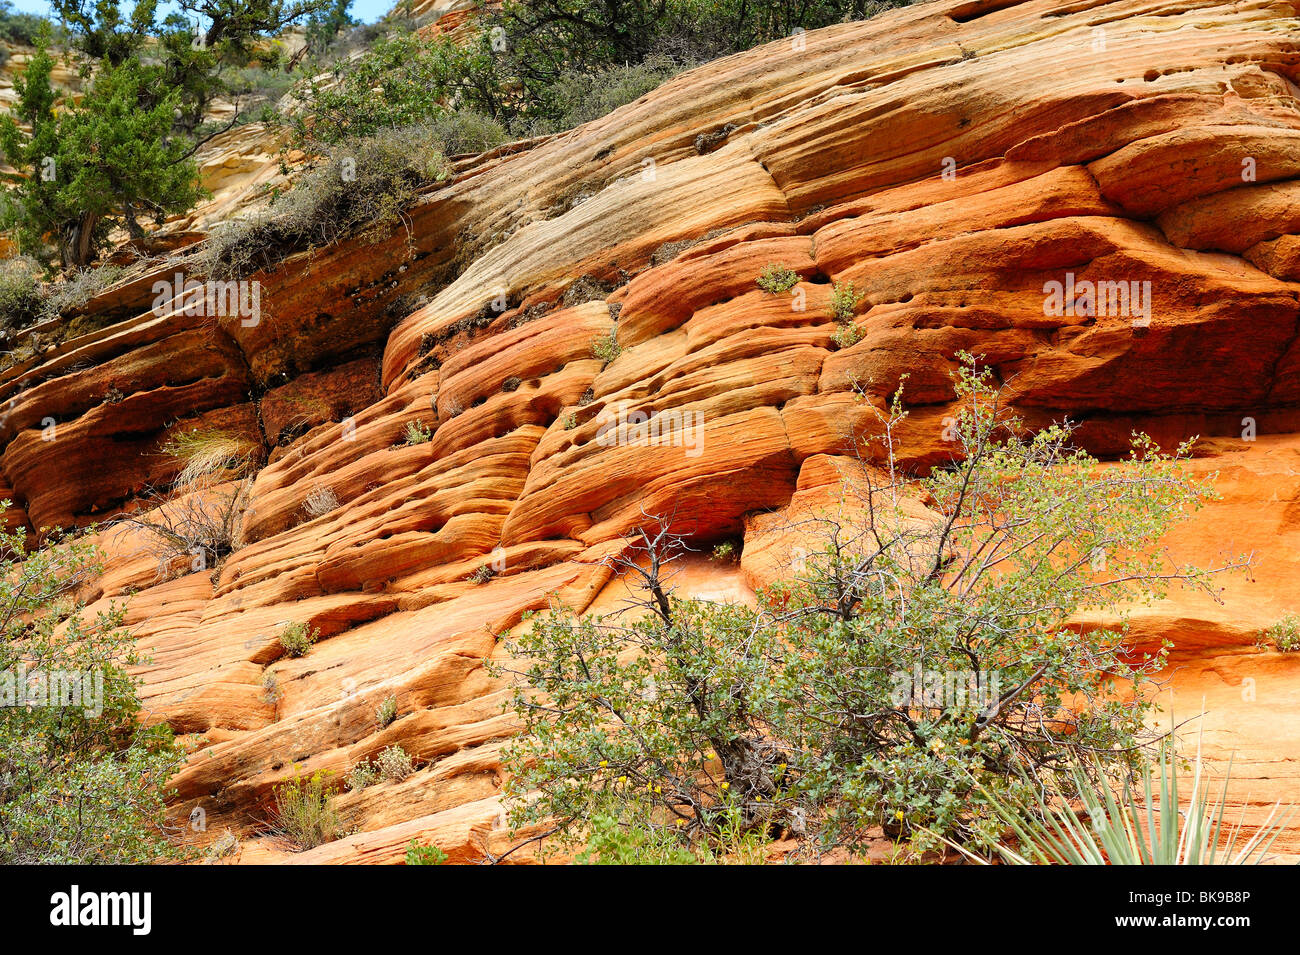 Cliff on the way to Observation Point in Zion National Park, Utah, USA - Stock Image